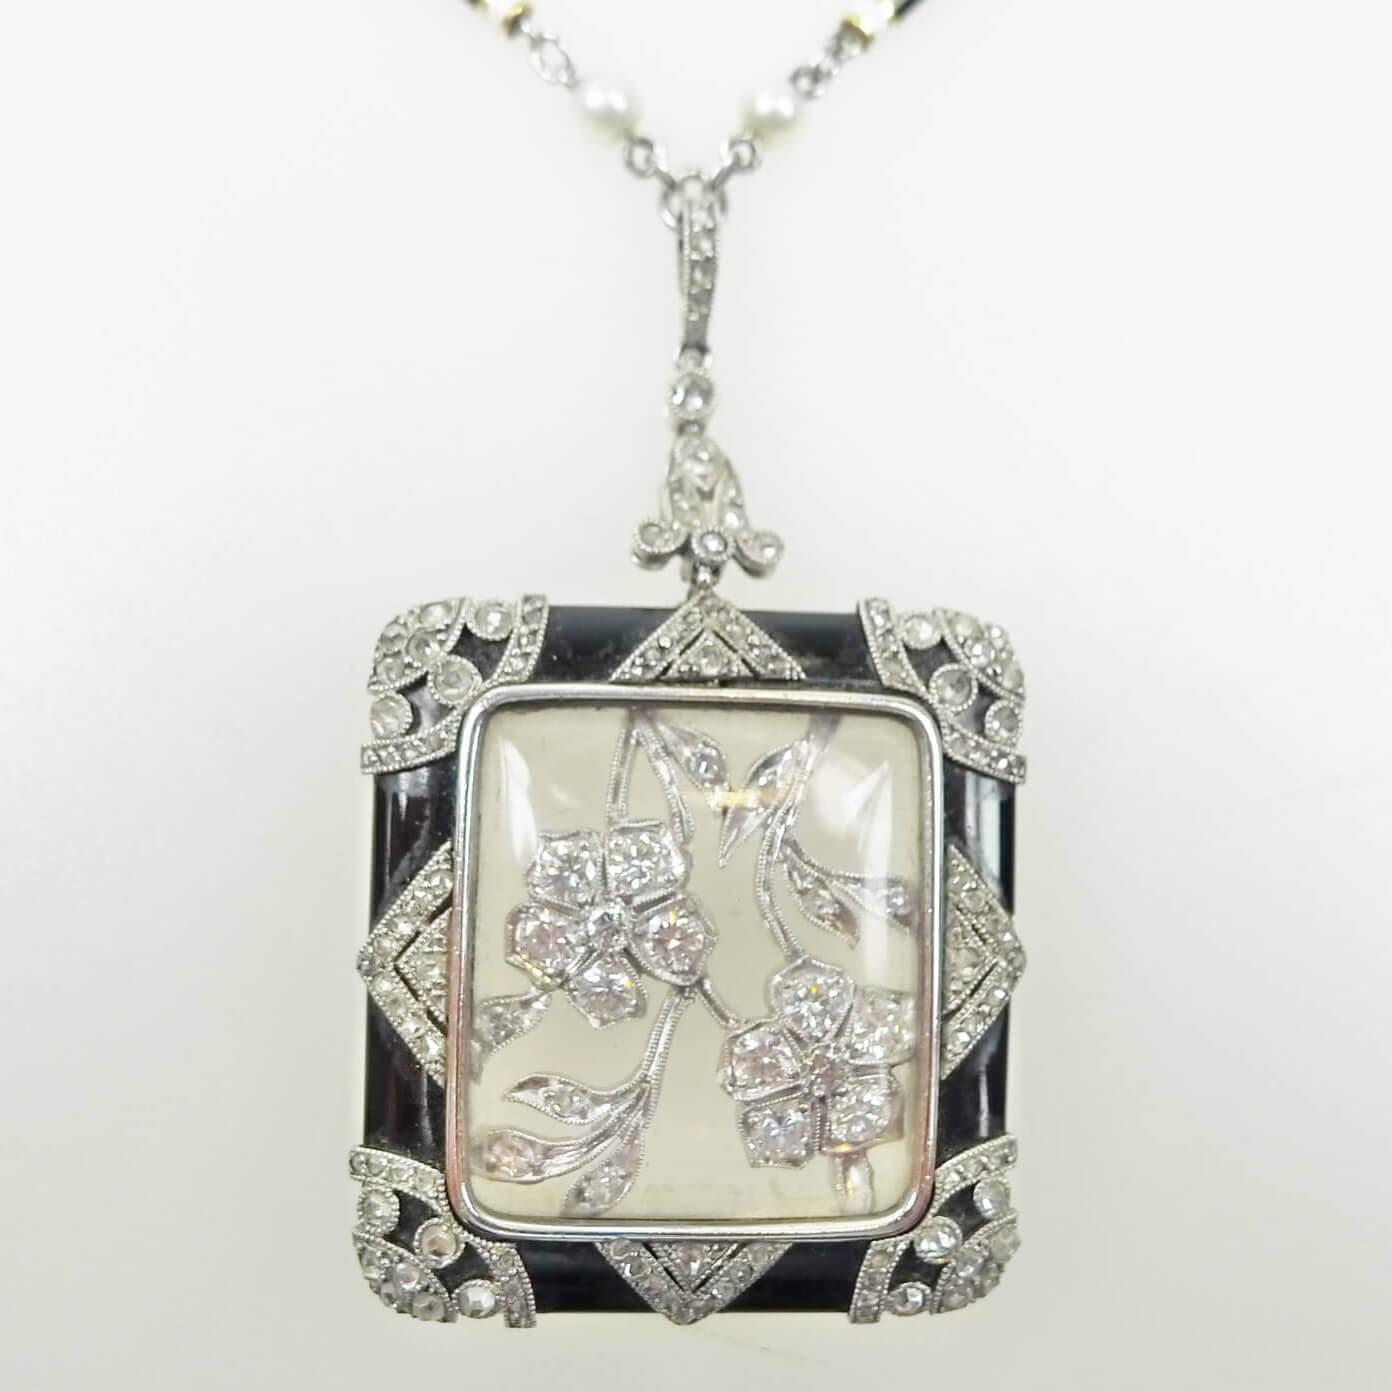 Pendants shapur mozaffarian san francisco fine jewelry since 1850 art deco platinum diamond black onyx pendant aloadofball Image collections